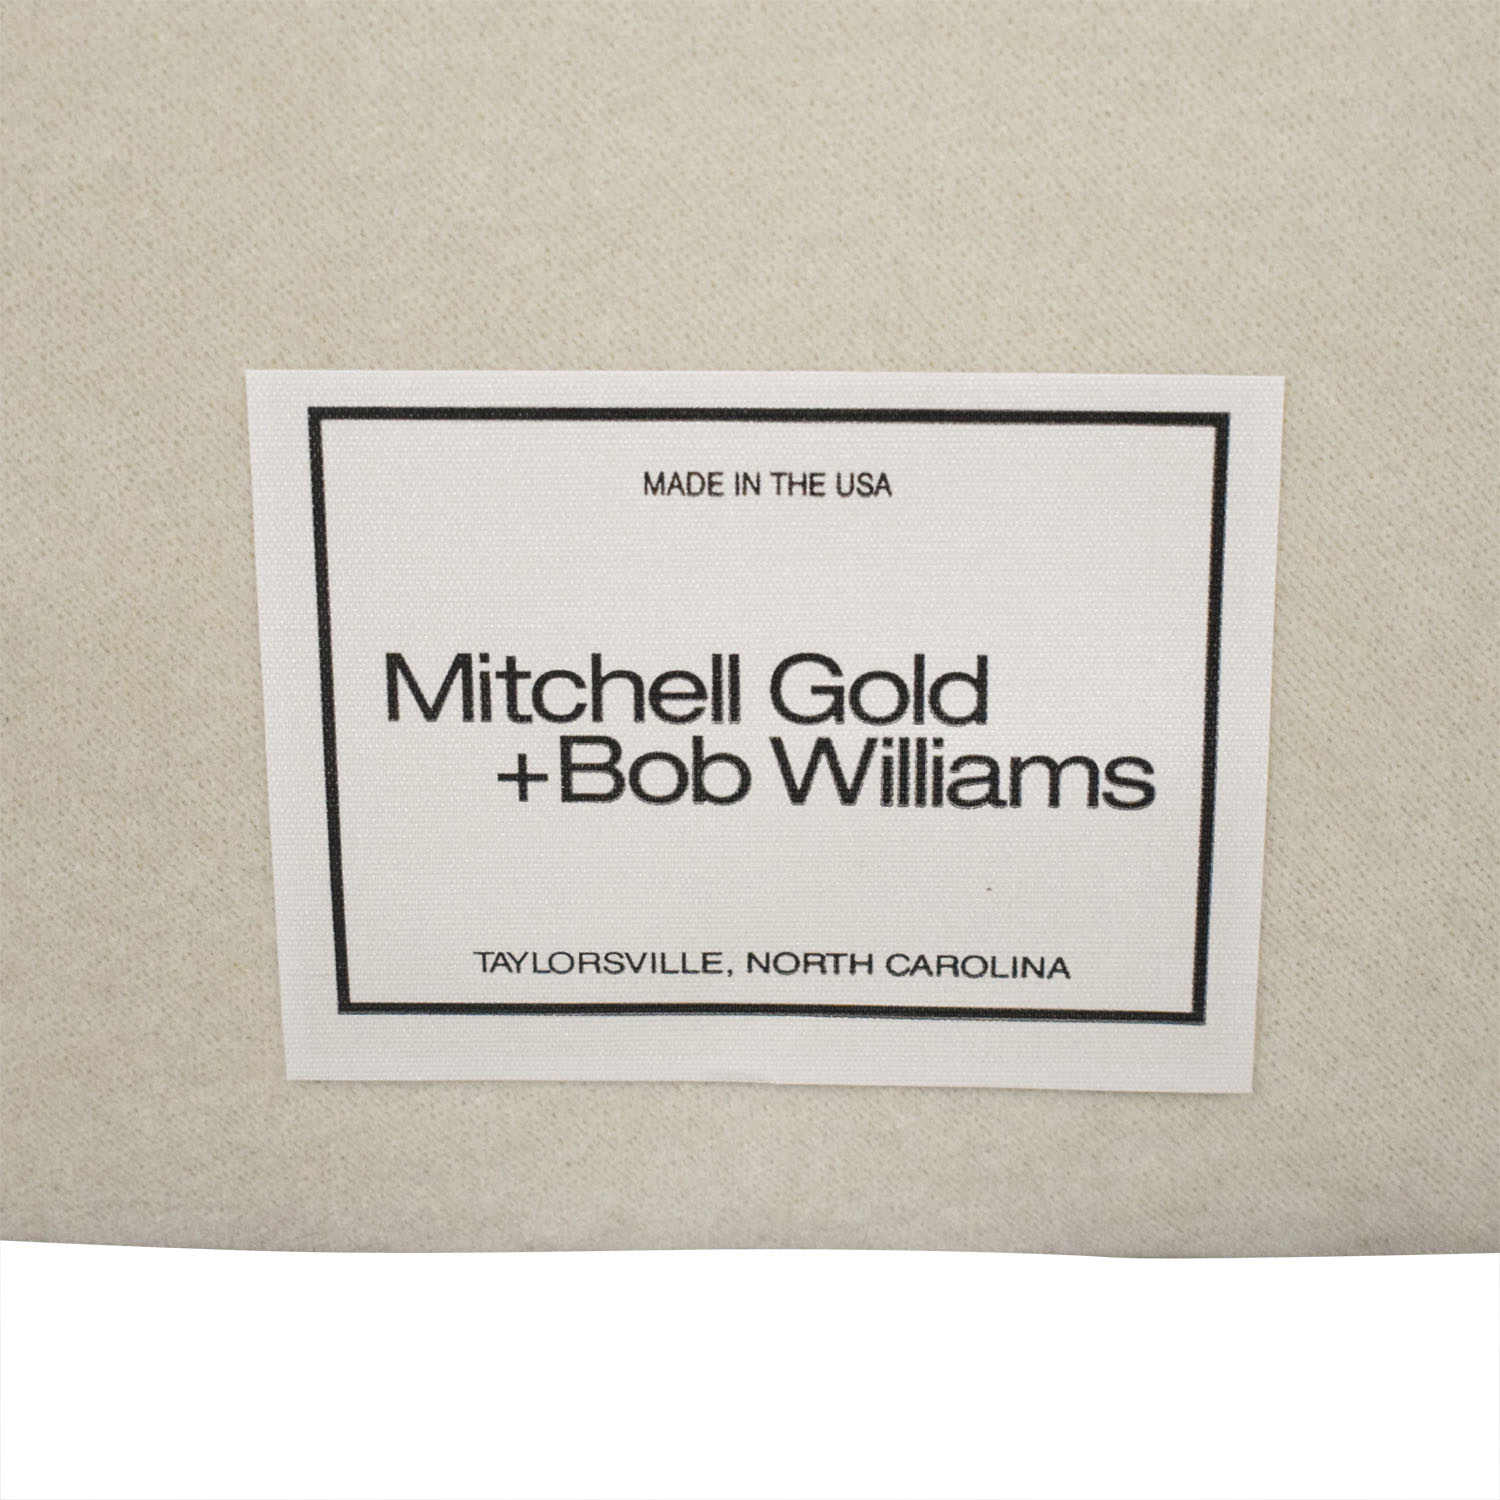 Mitchell Gold + Bob Williams MItchell Gold + Bob Williams Celina Queen Bed coupon